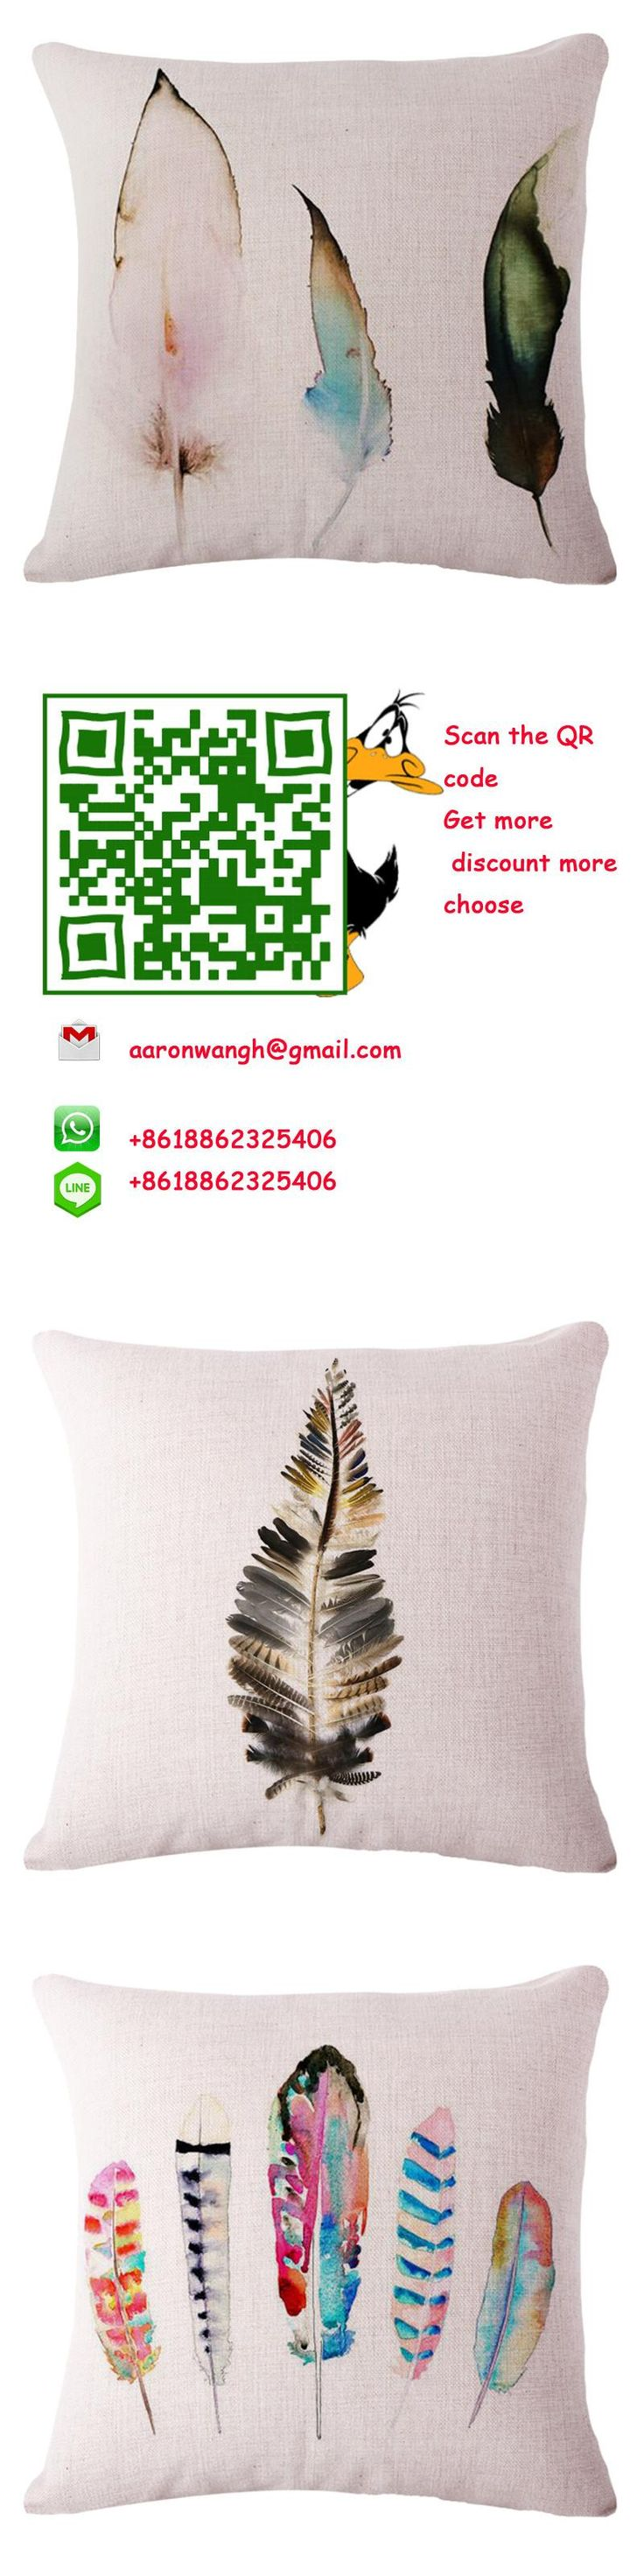 45cm *45cm Pretty Feather pillow case 3d 1 Side Printing Decorative Throw Pillows Cover for So fa Pillowcase